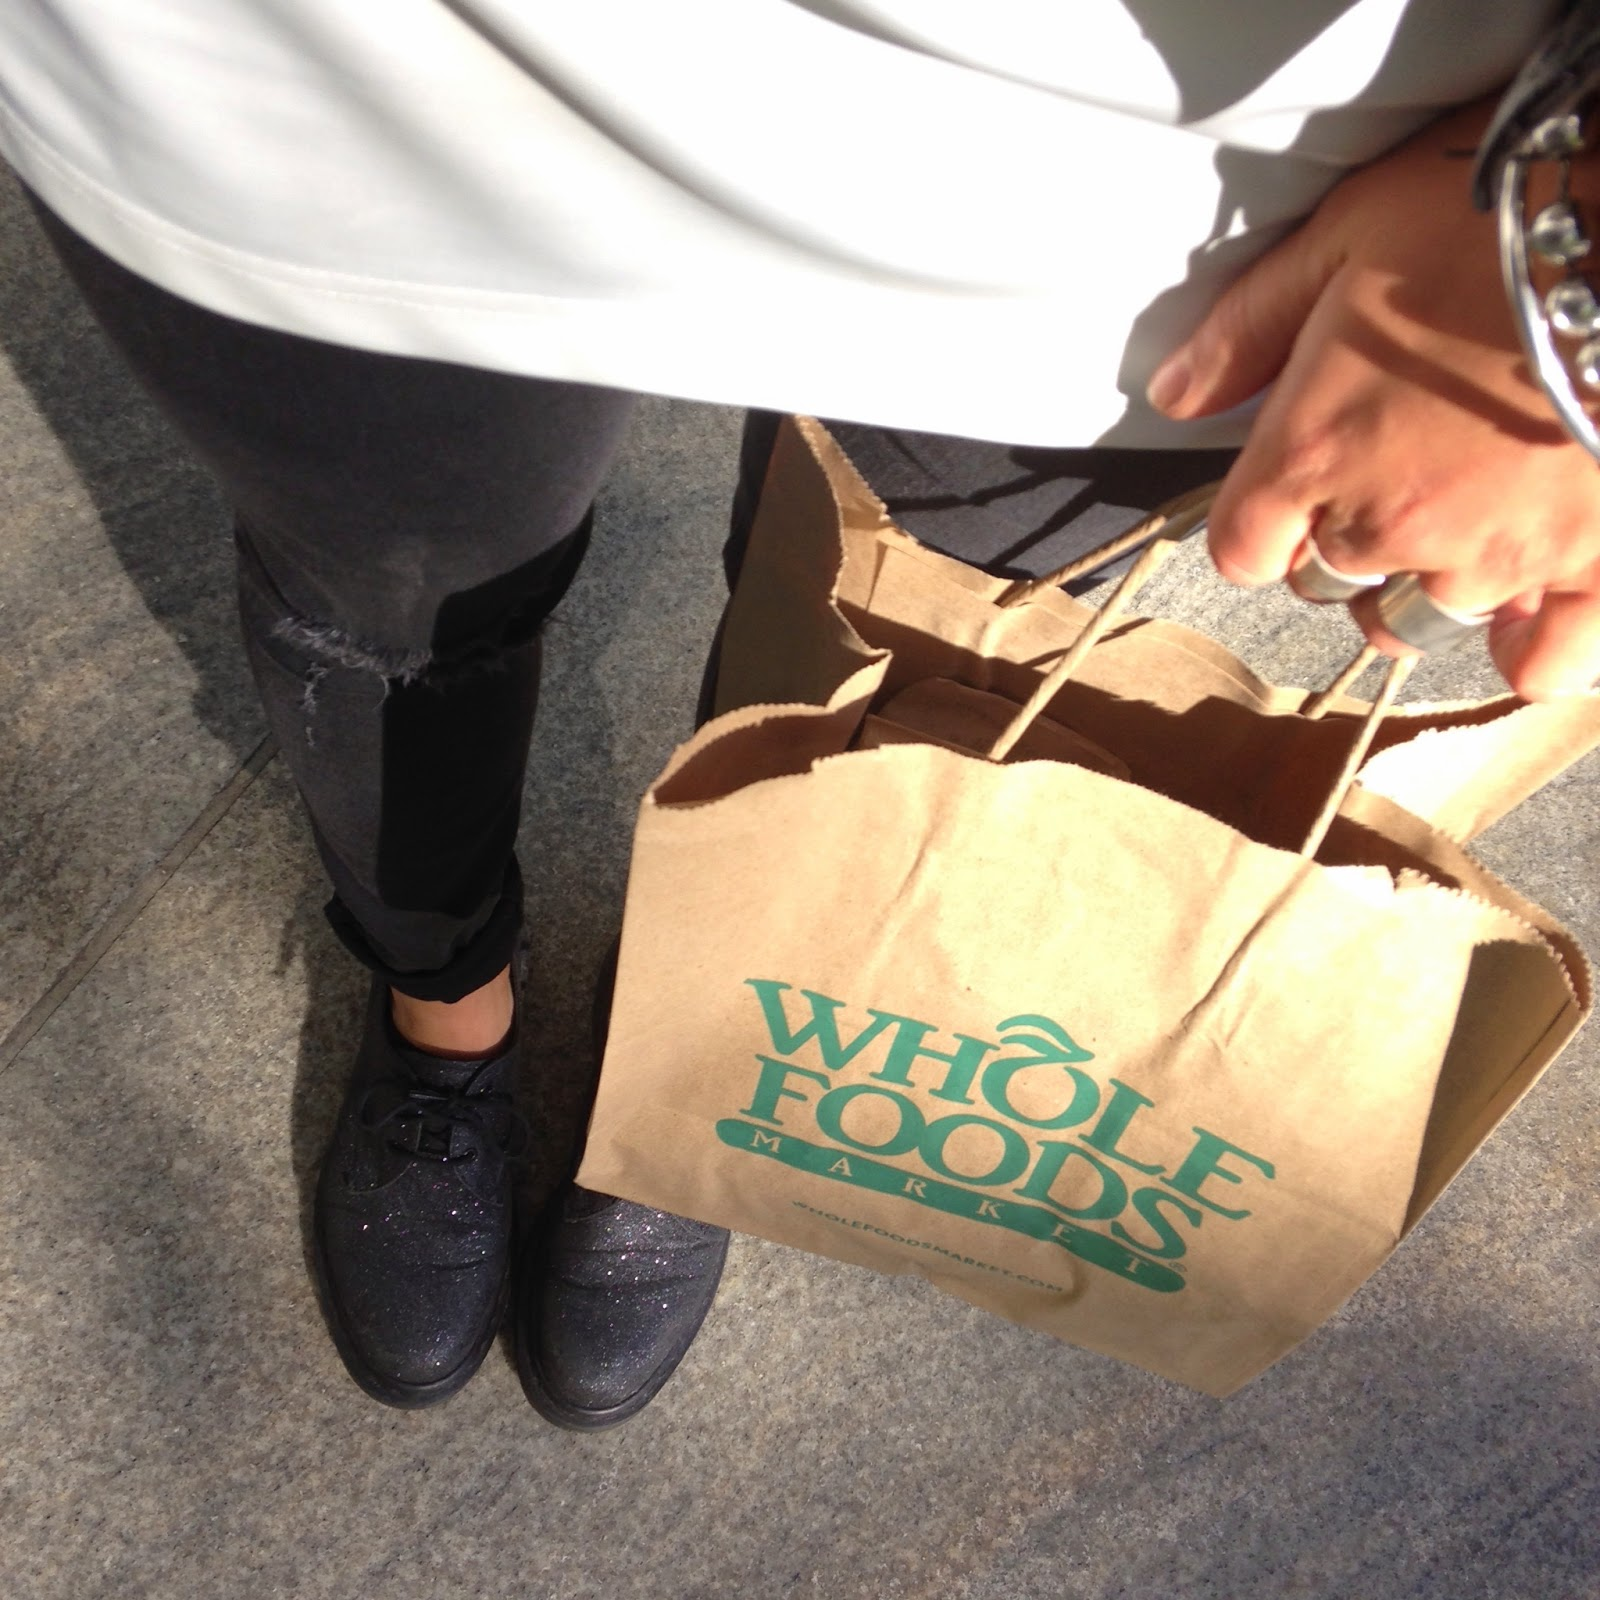 30 day challenge show addict fashion style ootd nyc whole foods dr martens street style rag and bone